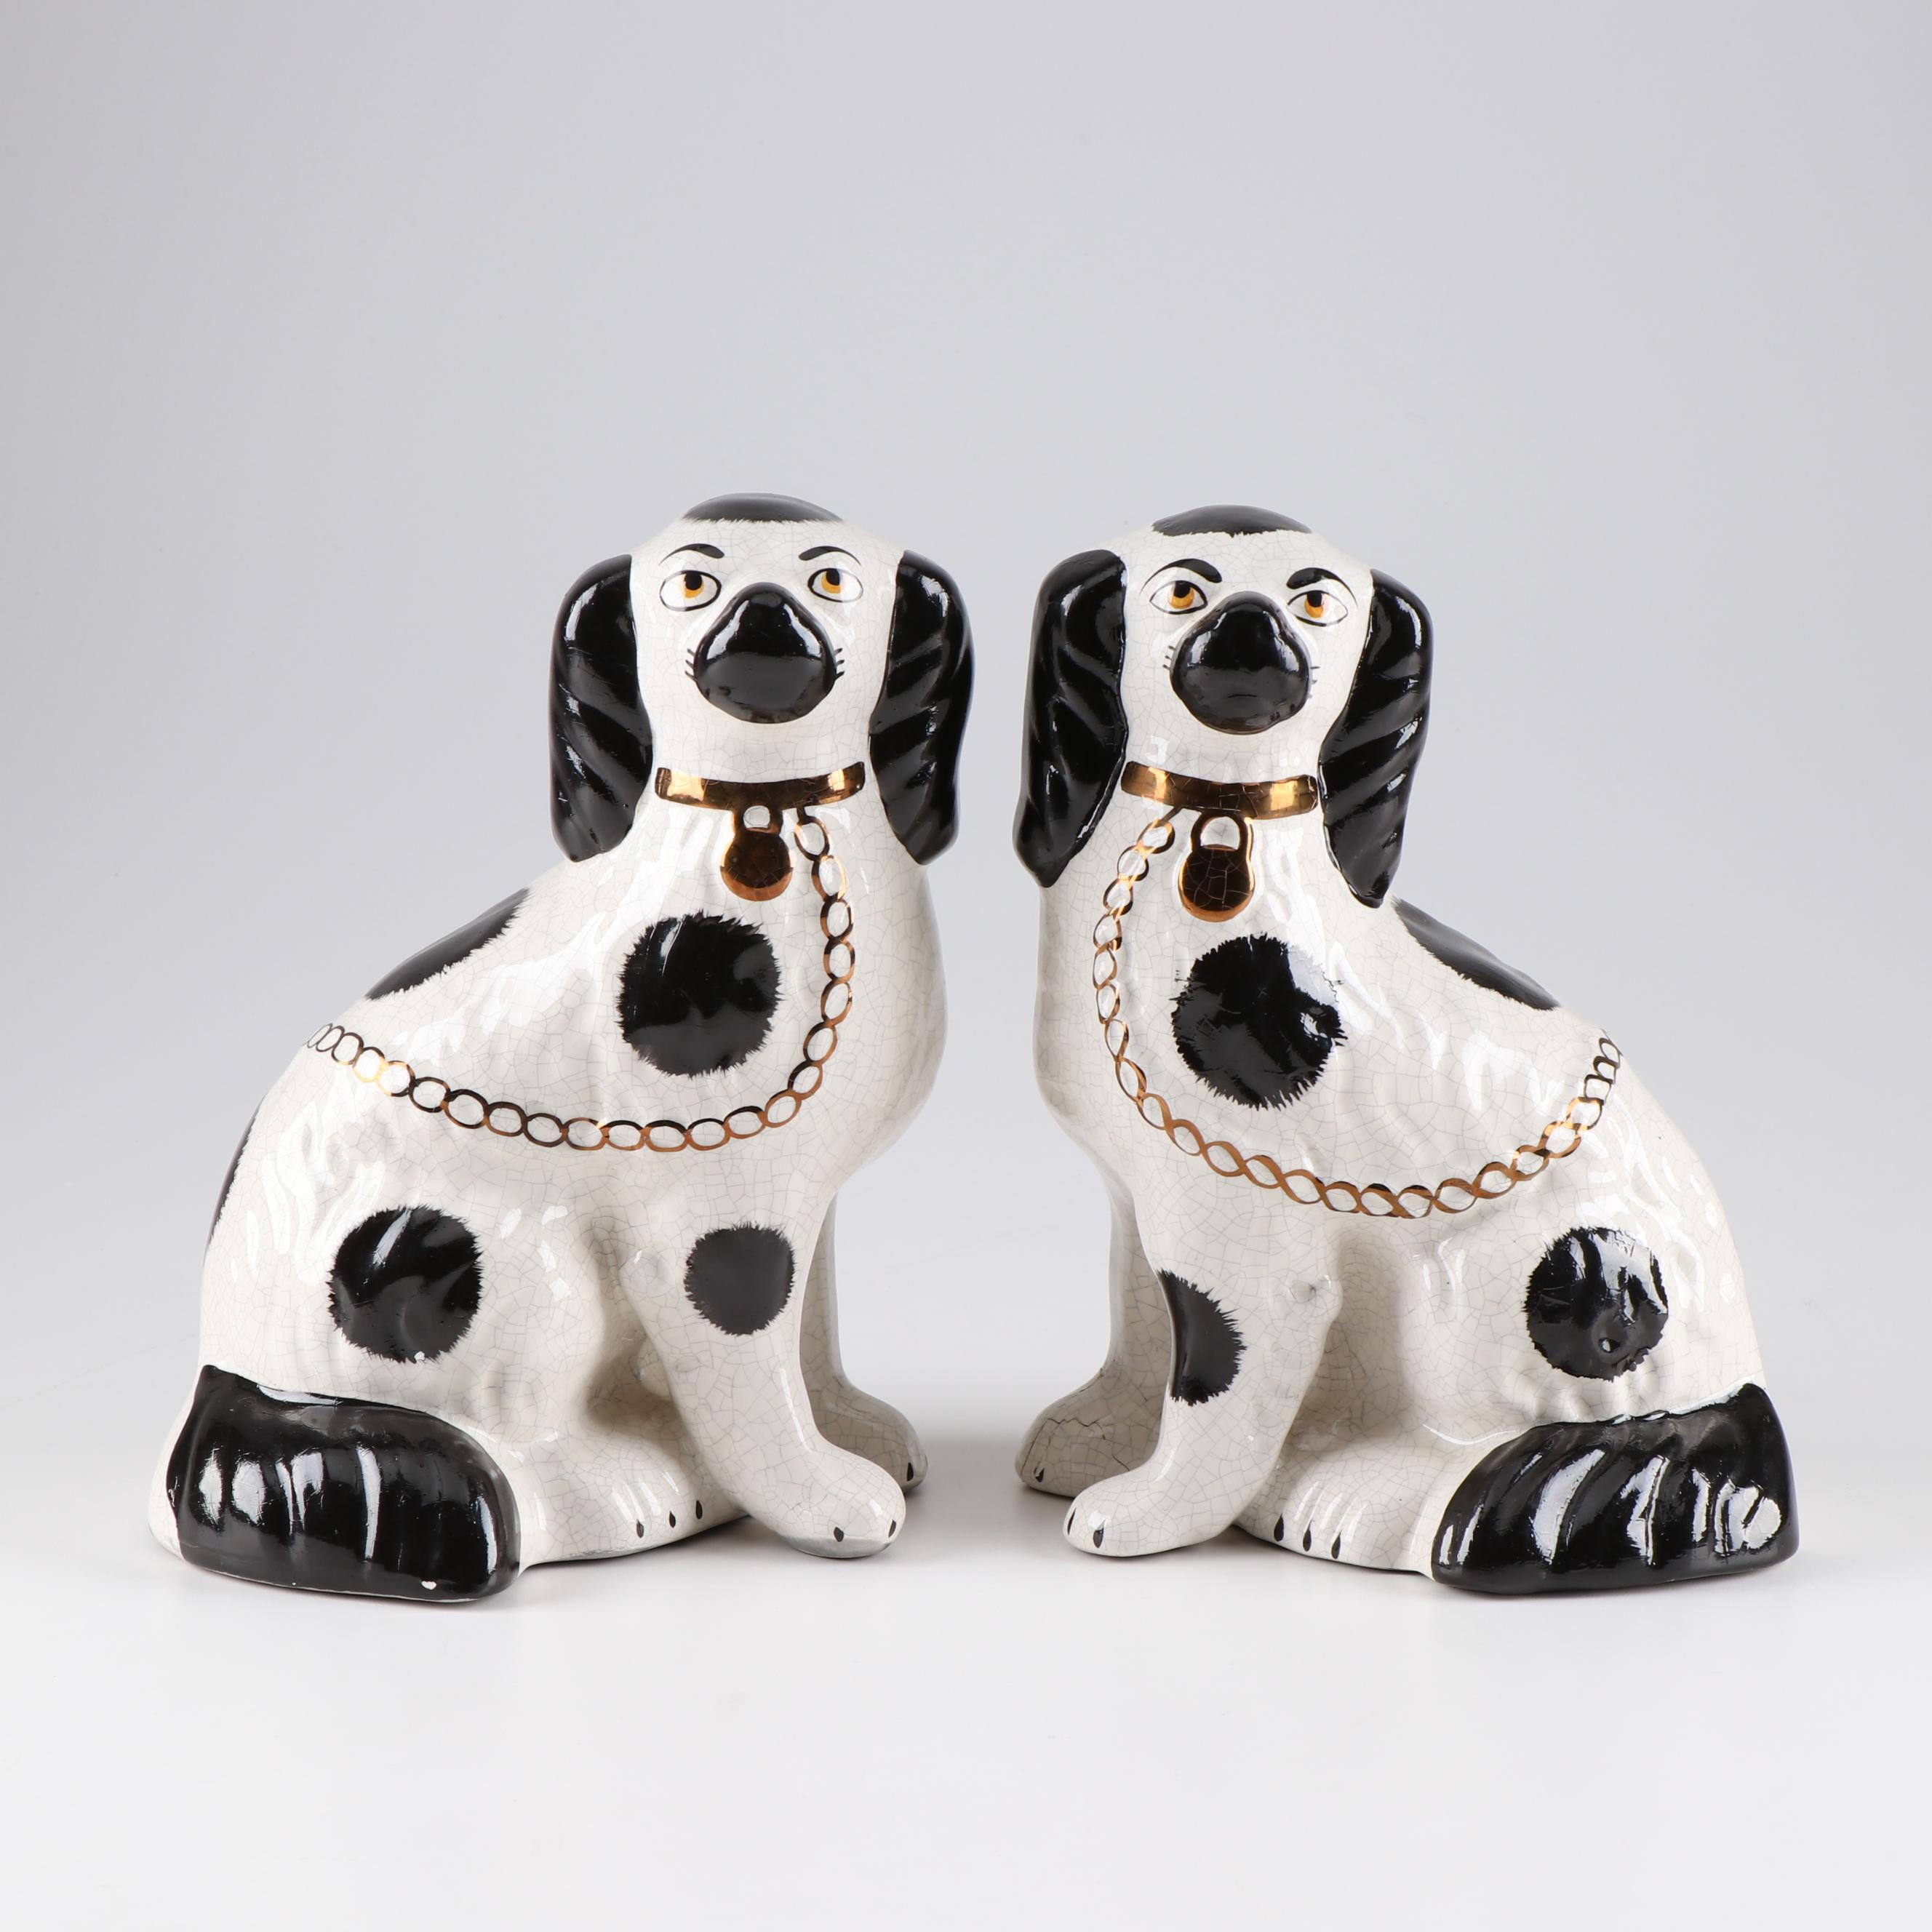 English Staffordshire Ceramic Dogs, Early 20th Century